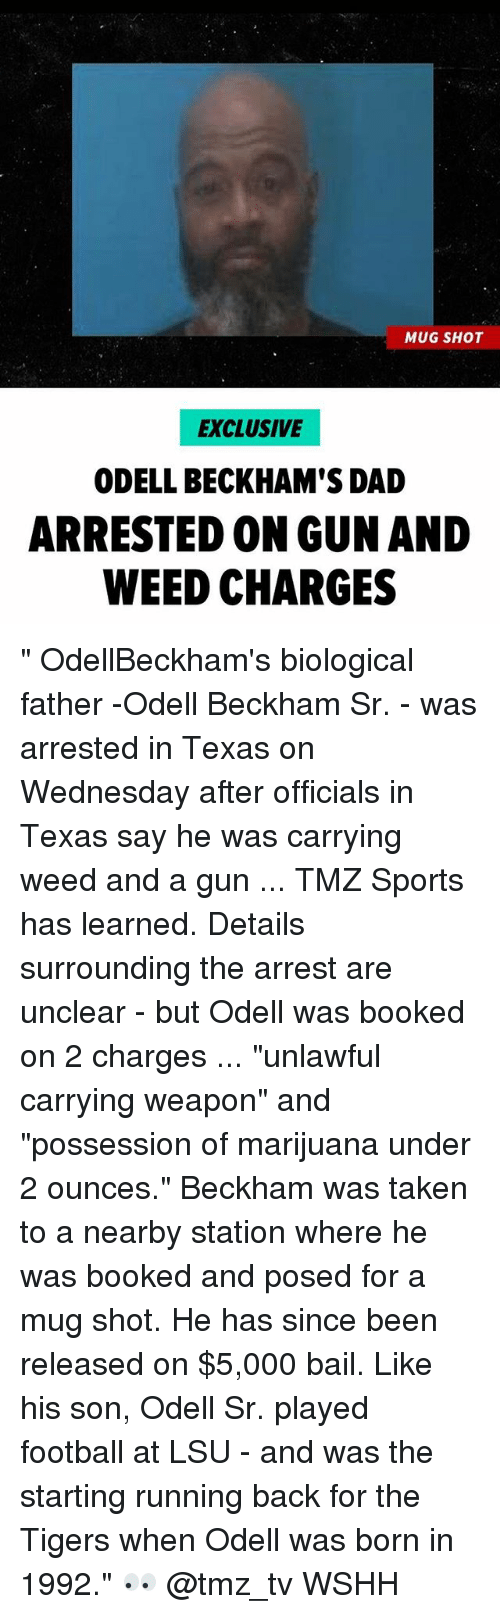 "Dad, Football, and Memes: MUG SHOT  EXCLUSIVE  ODELL BECKHAM'S DAD  ARRESTED ON GUN AND  WEED CHARGES "" OdellBeckham's biological father -Odell Beckham Sr. - was arrested in Texas on Wednesday after officials in Texas say he was carrying weed and a gun ... TMZ Sports has learned. Details surrounding the arrest are unclear - but Odell was booked on 2 charges ... ""unlawful carrying weapon"" and ""possession of marijuana under 2 ounces."" Beckham was taken to a nearby station where he was booked and posed for a mug shot. He has since been released on $5,000 bail. Like his son, Odell Sr. played football at LSU - and was the starting running back for the Tigers when Odell was born in 1992."" 👀 @tmz_tv WSHH"